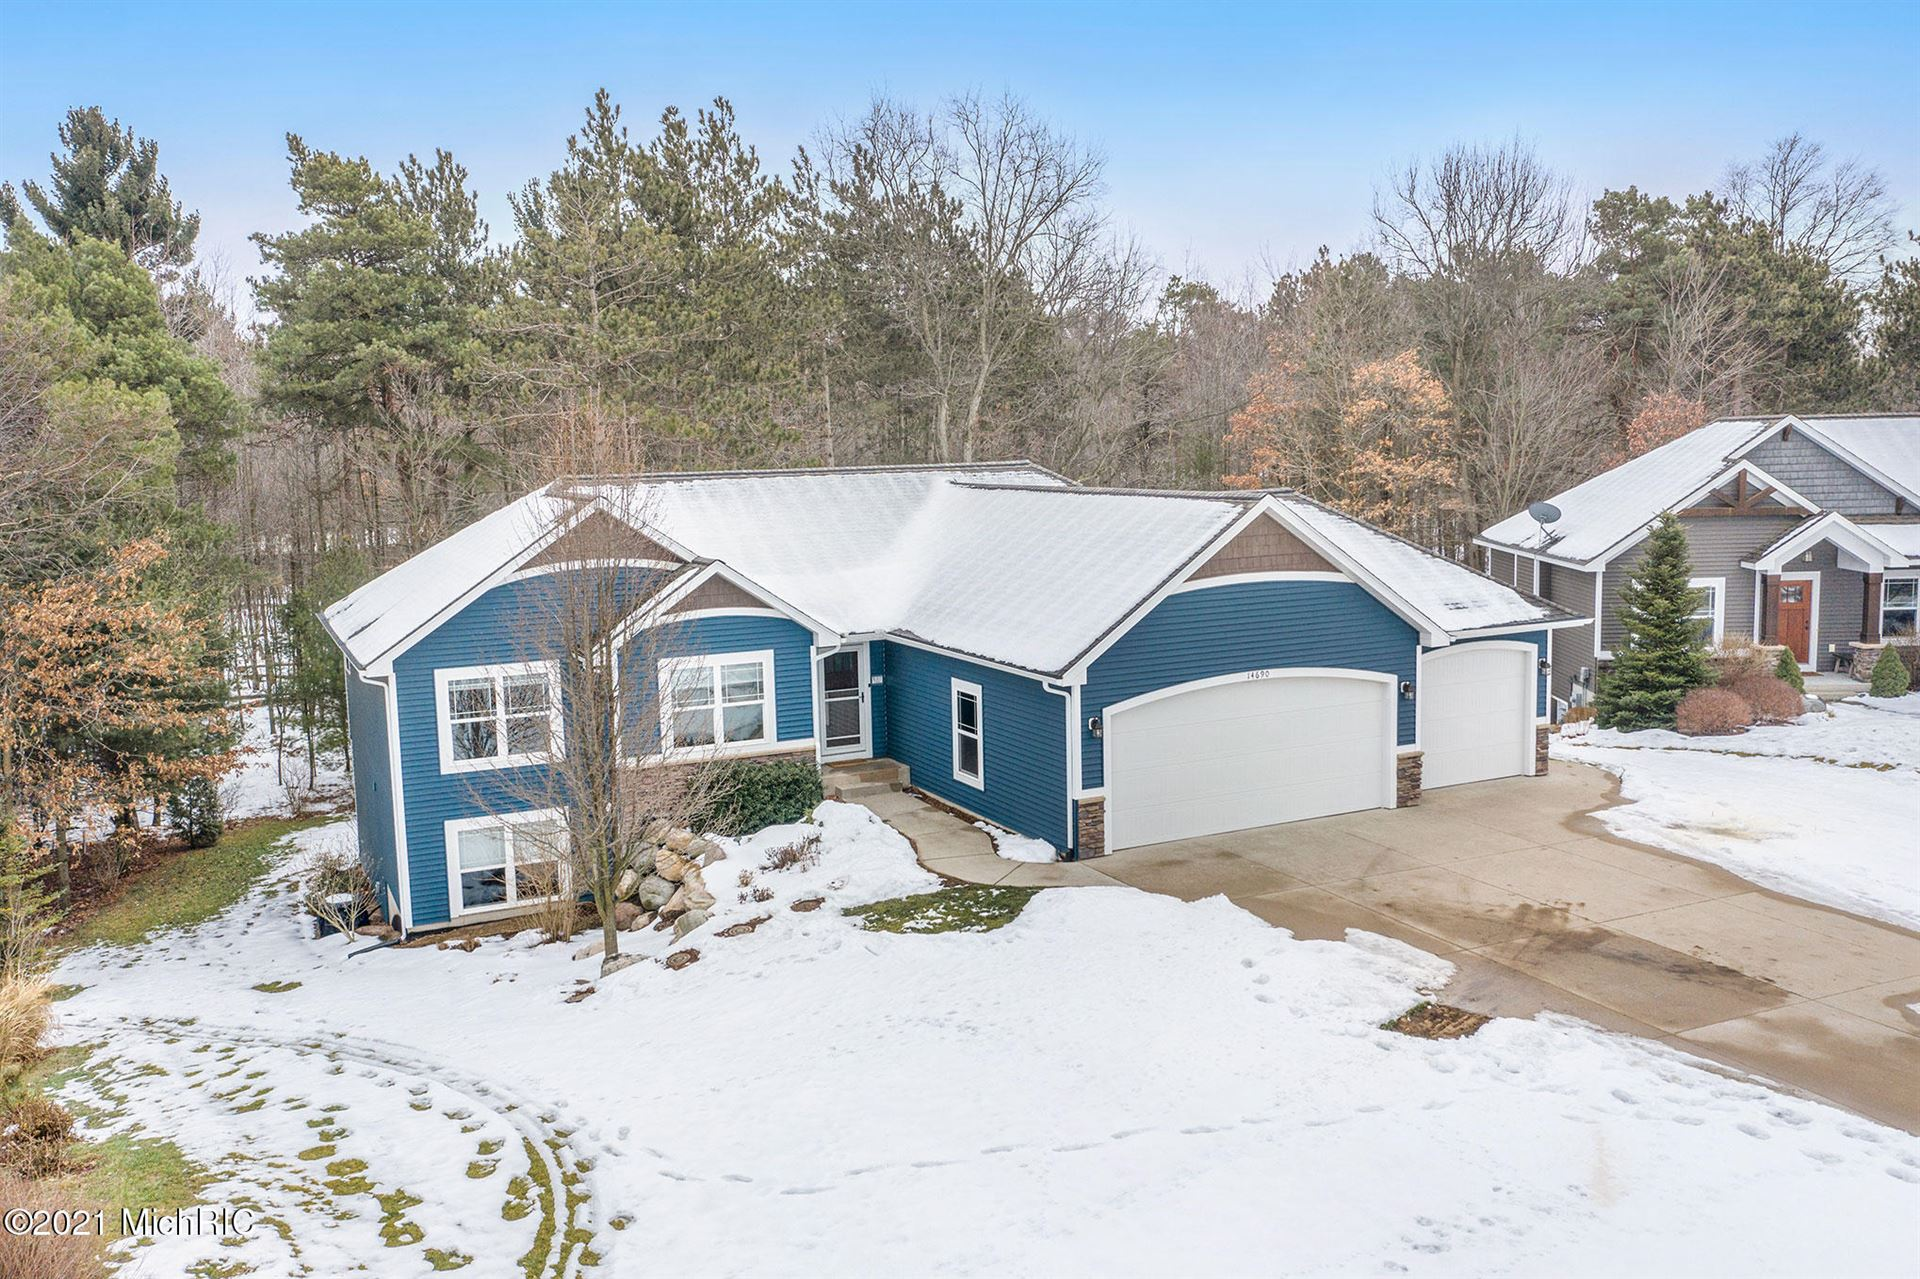 14690 Mayberry Drive, West Olive, MI 49460 - MLS#: 21001384